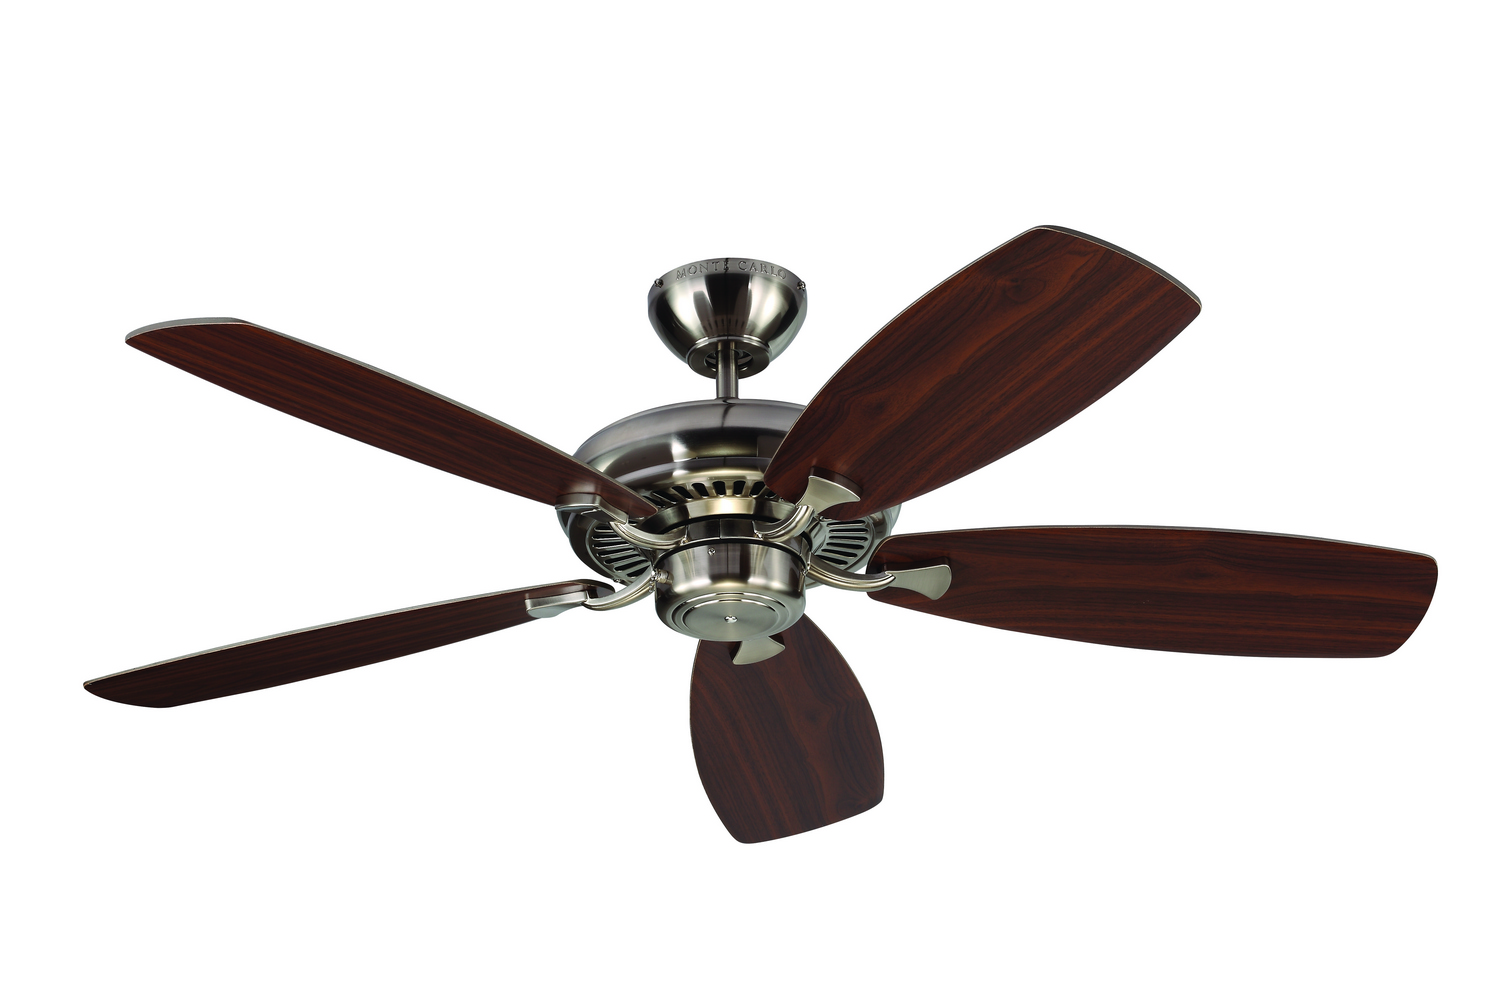 52 inchCeiling Fan from the Designer Max collection by Monte Carlo 5DM52BS